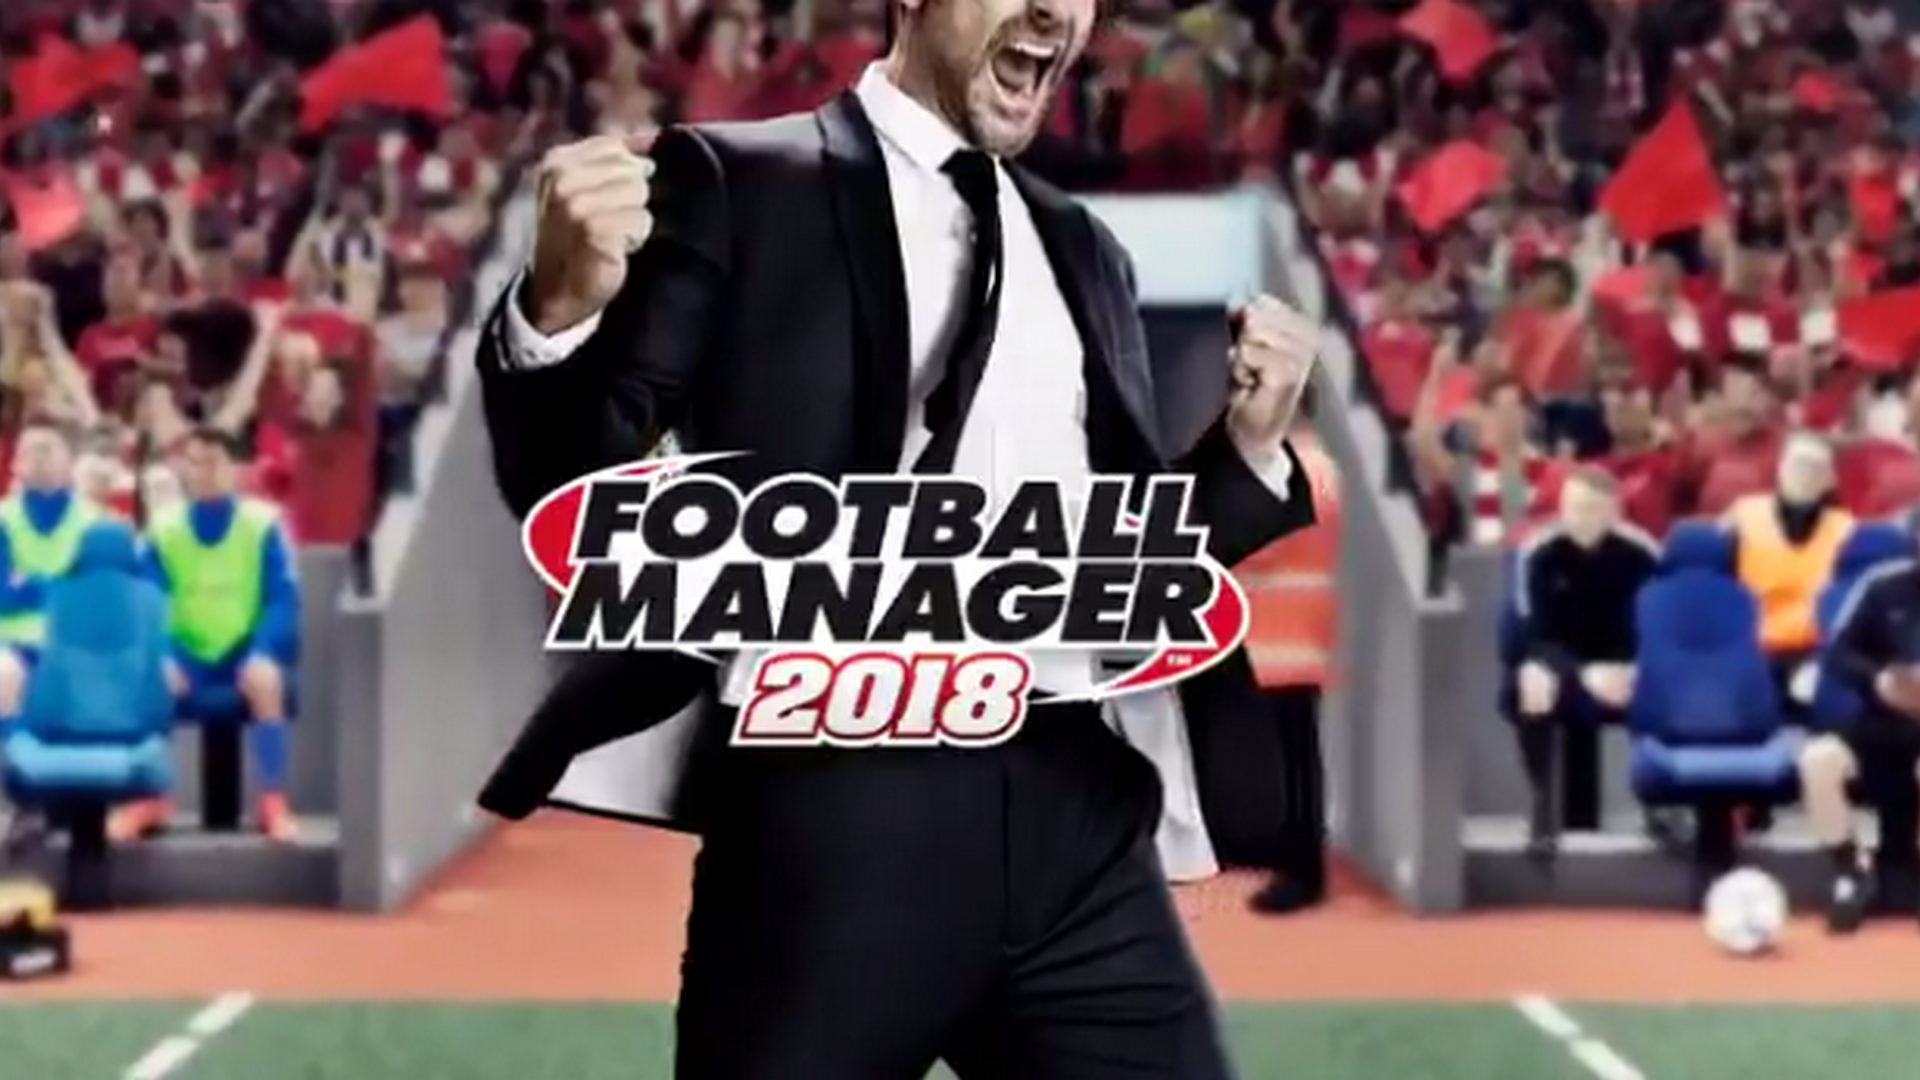 football manager crack 2018